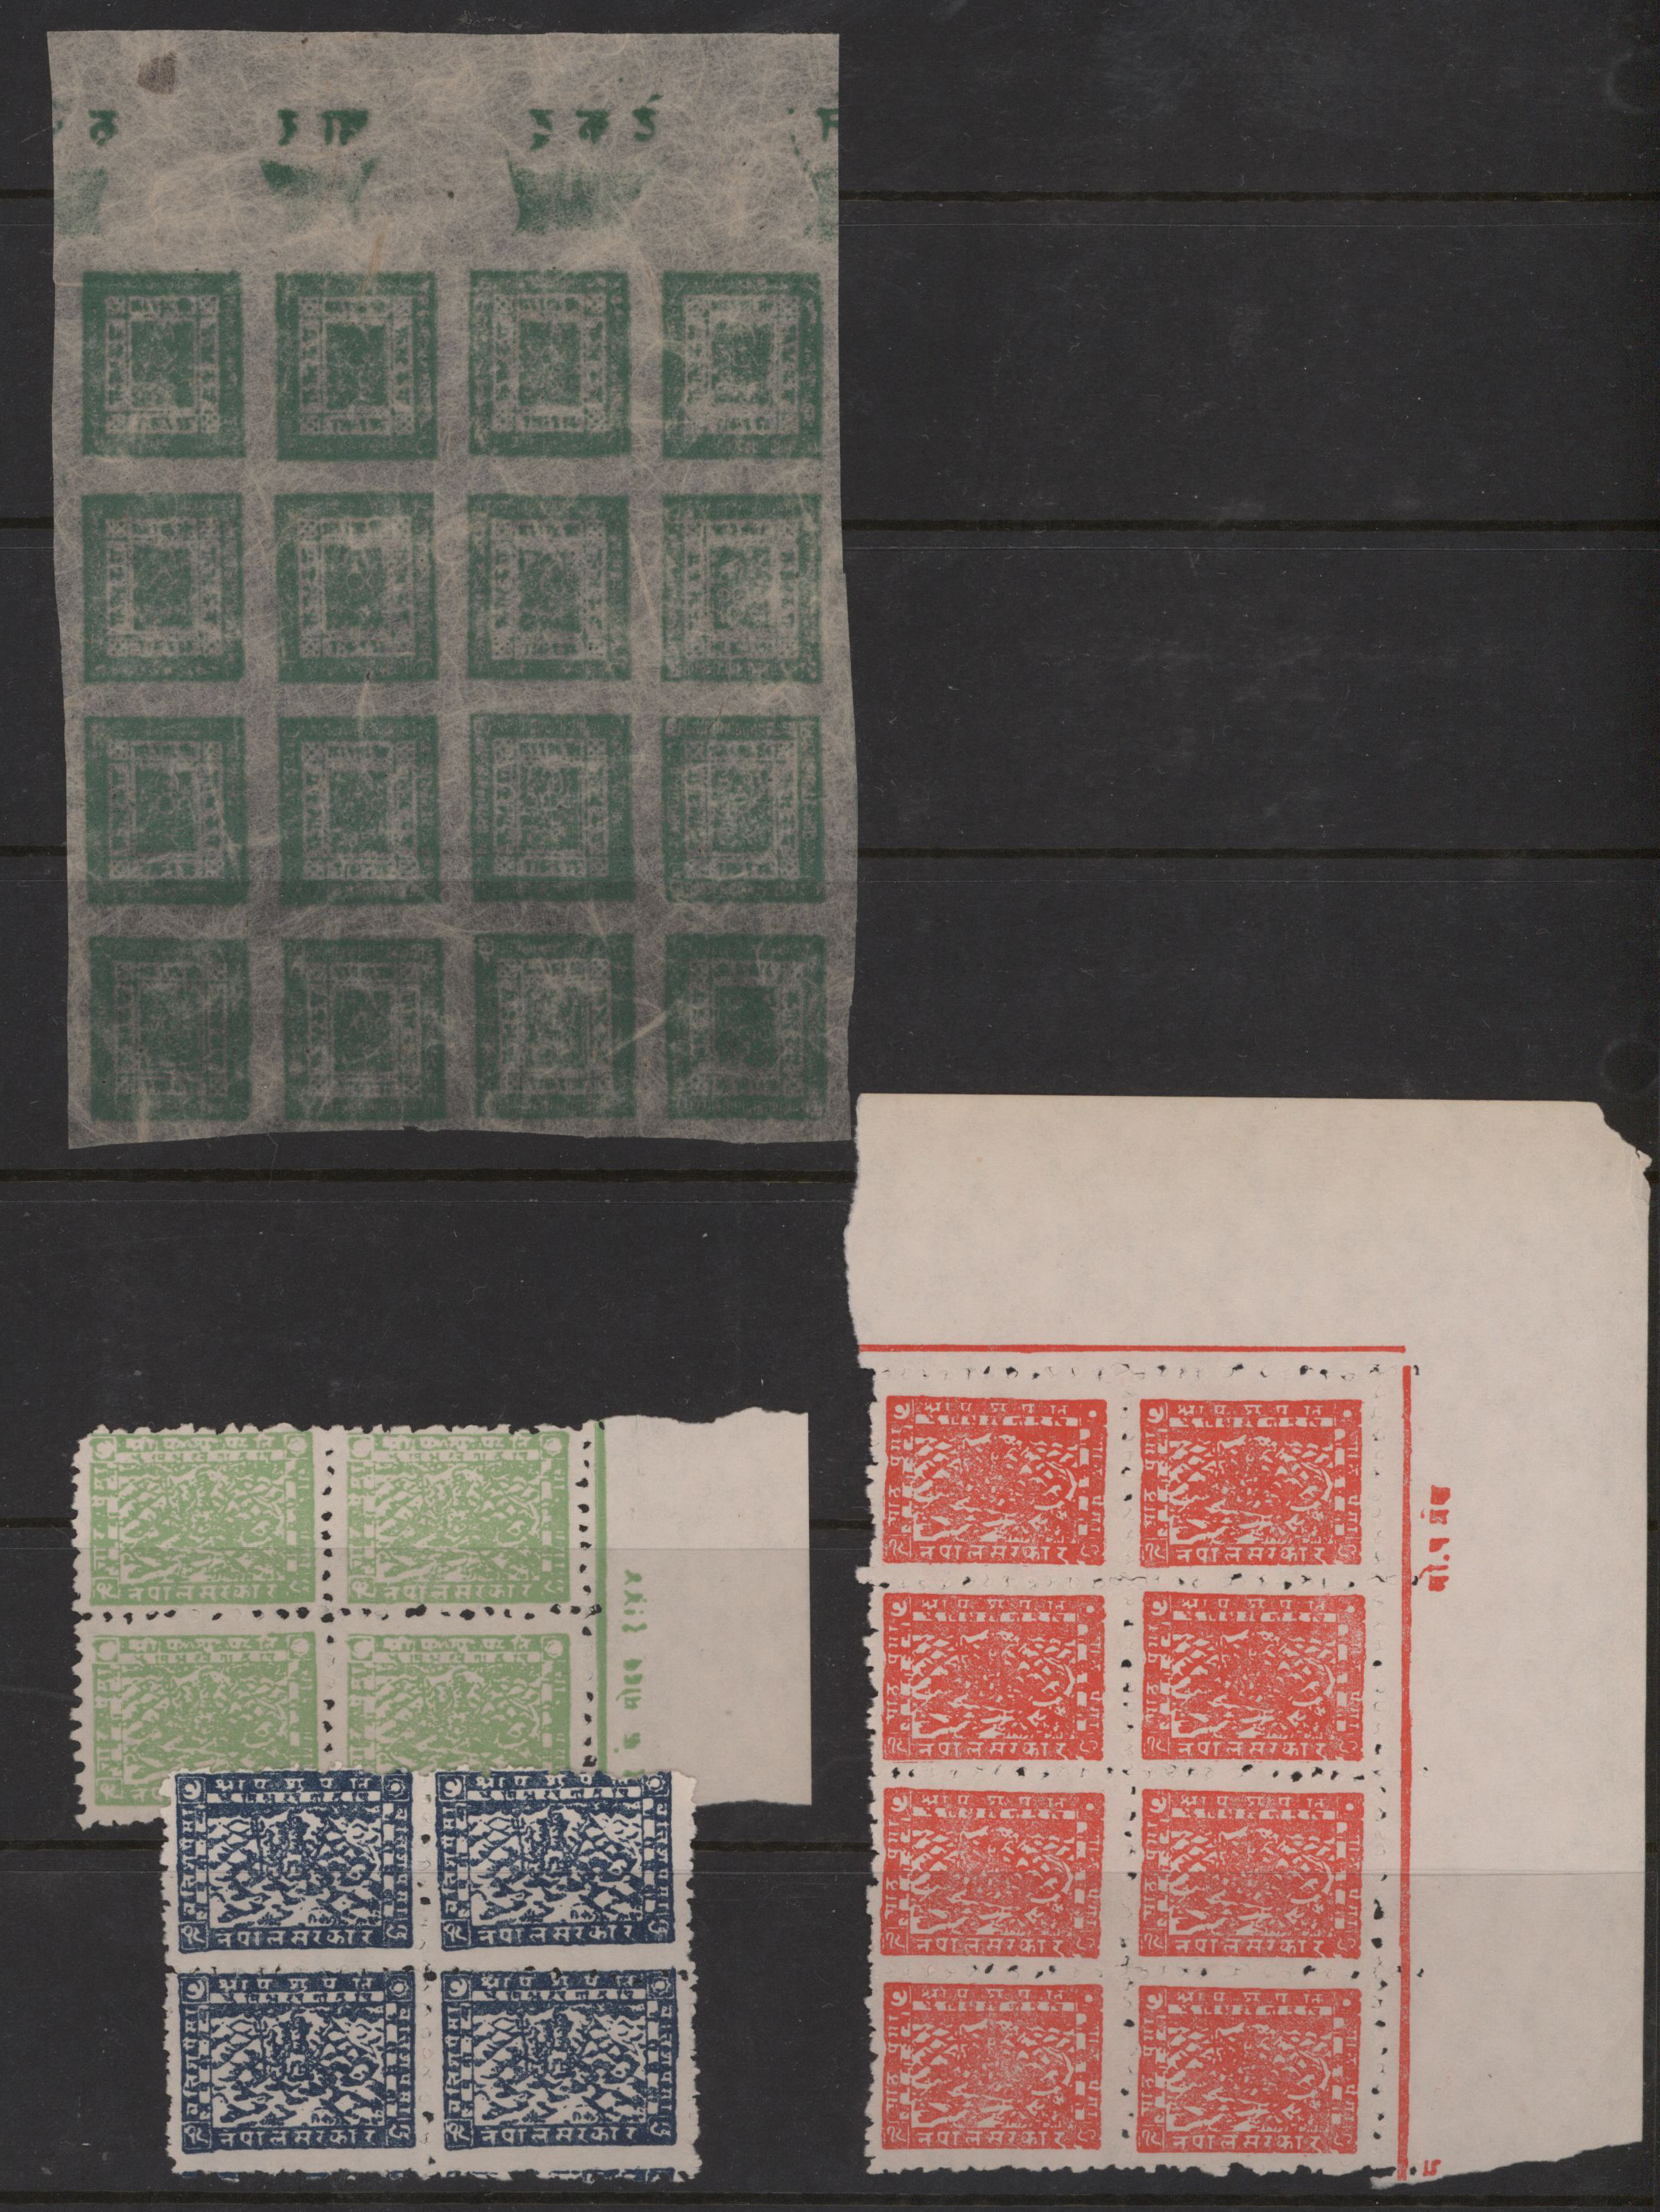 Lot 14124 - Nepal  -  Auktionshaus Christoph Gärtner GmbH & Co. KG Sale #48 collections Overseas  Airmail / Ship mail & Thematics